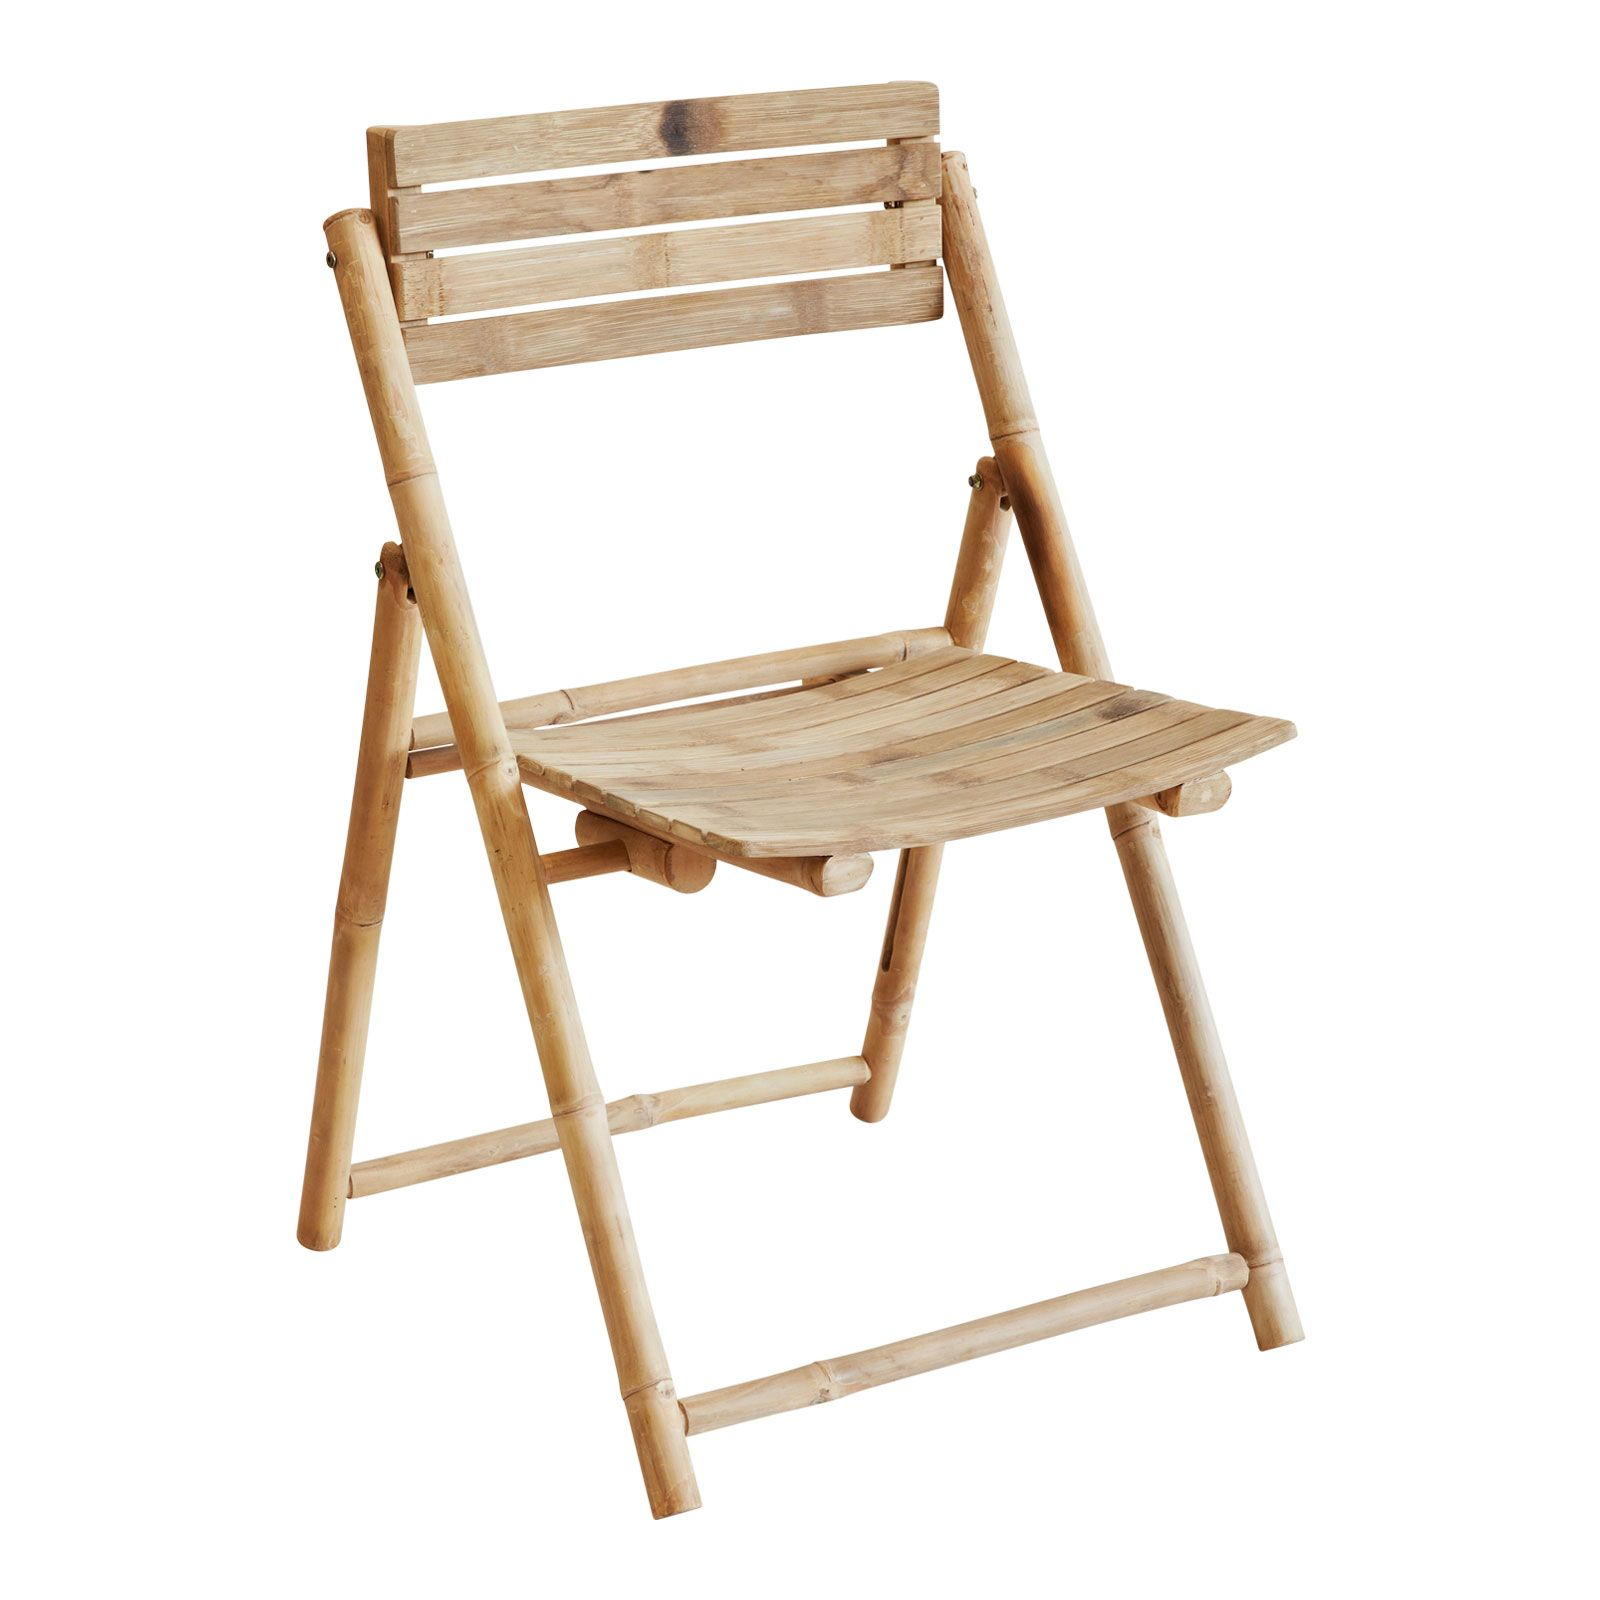 Web Deck Chairs 010 Folding Chair Rattan Outdoor Furniture